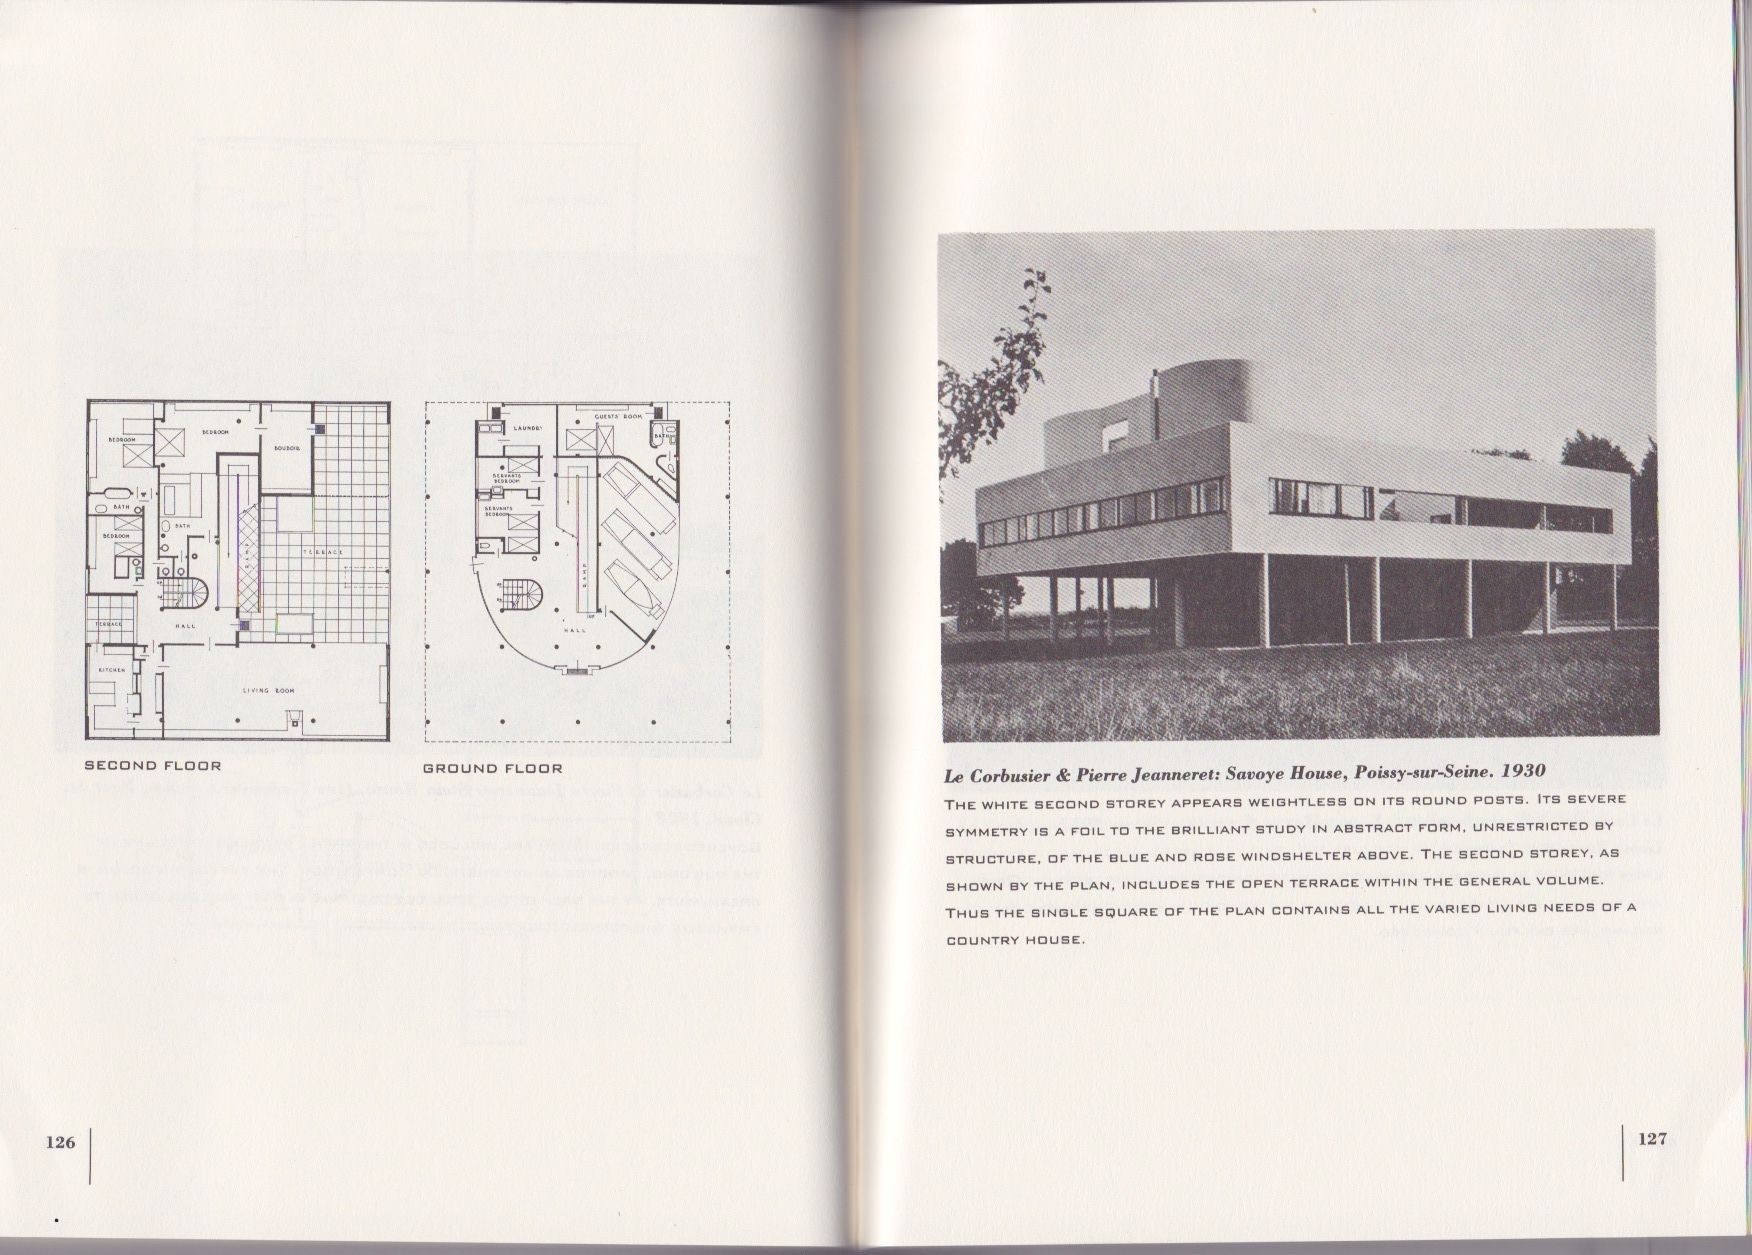 Plans And Photograph Of The Villa Savoye From The Book The International Style Architecture Since 1922 By Henr Book Cover Design Philip Johnson Book Design